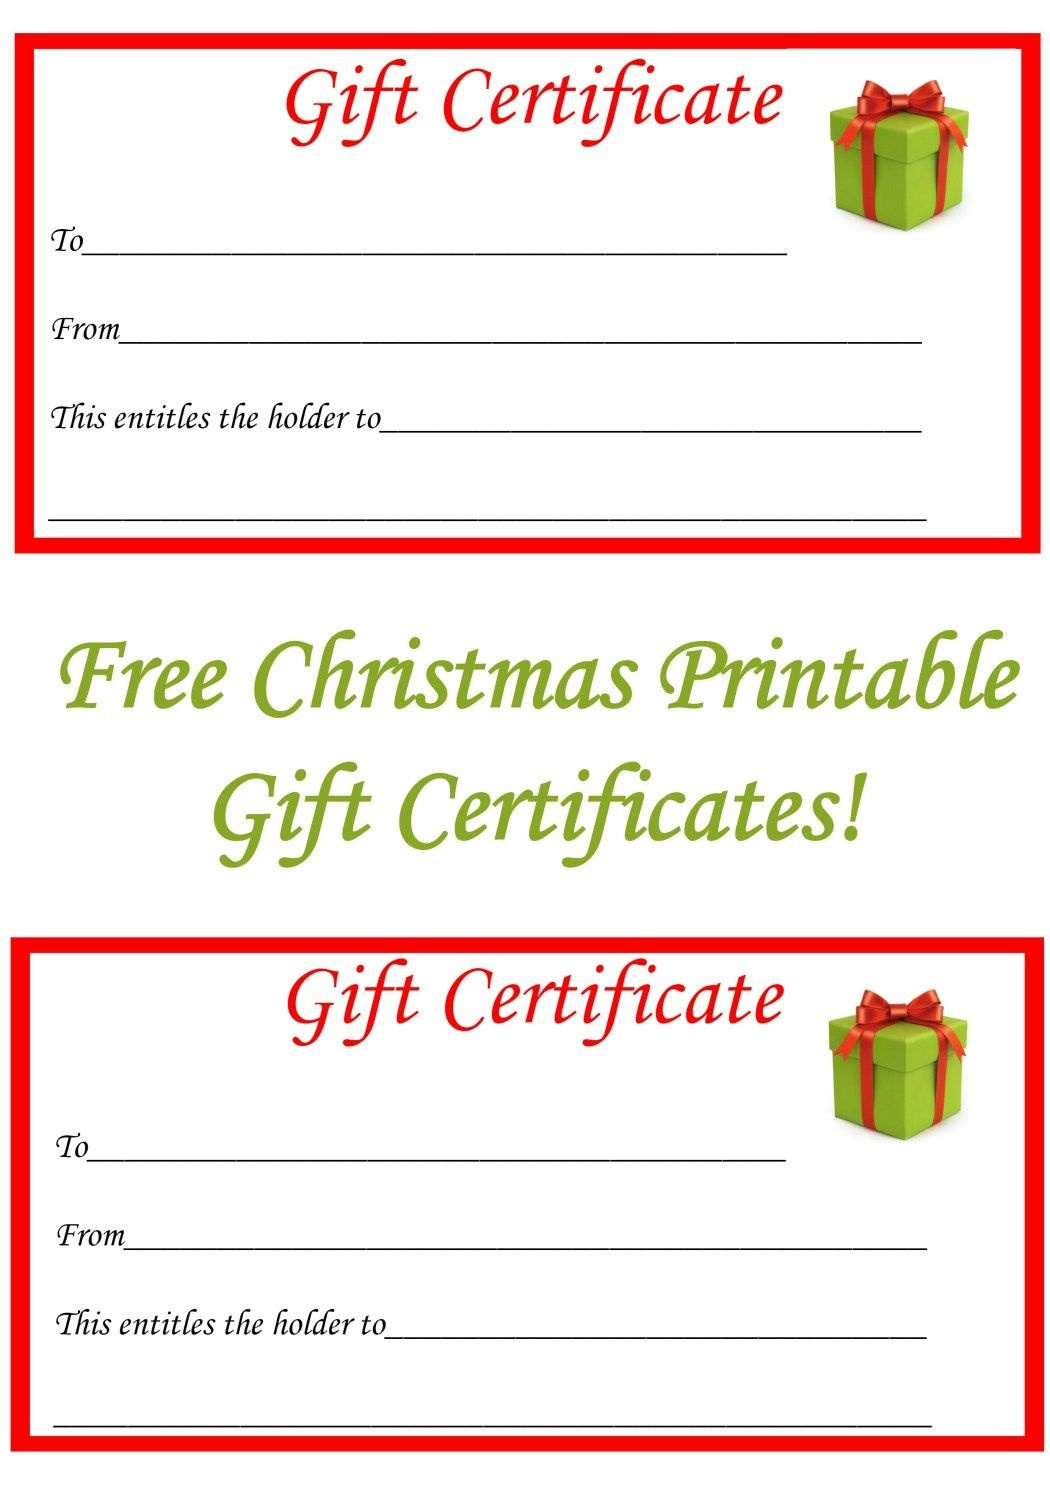 Free Christmas Printable Gift Certificates | Gift Ideas | Christmas - Free Printable Gift Certificate Christmas